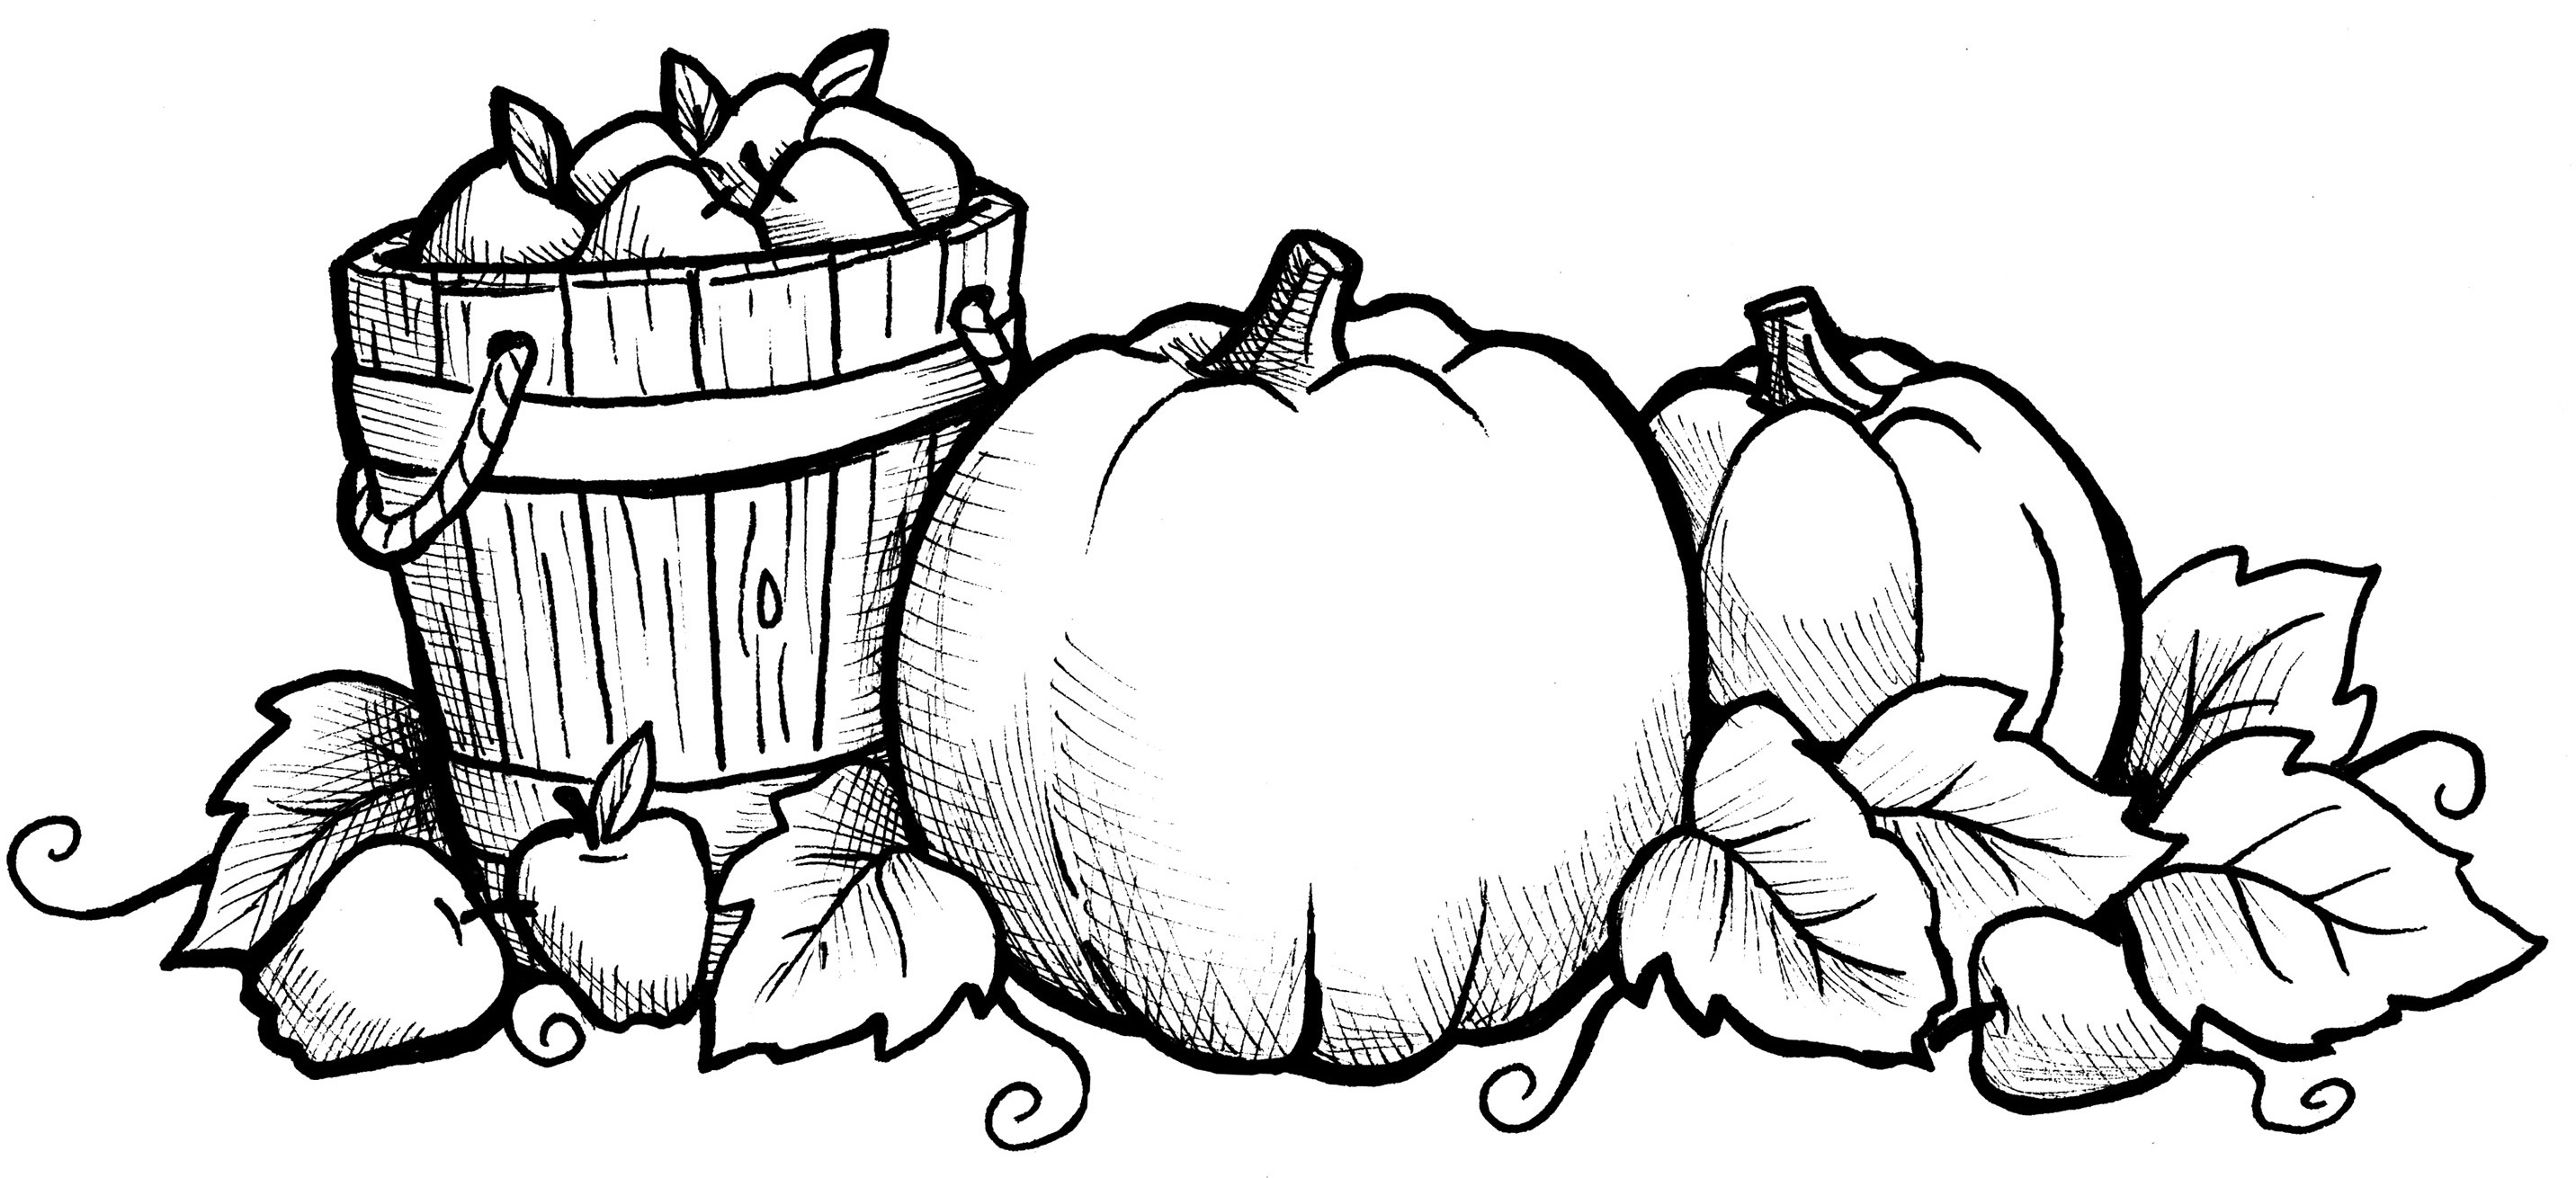 pumpking coloring pages get this pumpkin coloring pages for adults free yvbf1 pages pumpking coloring